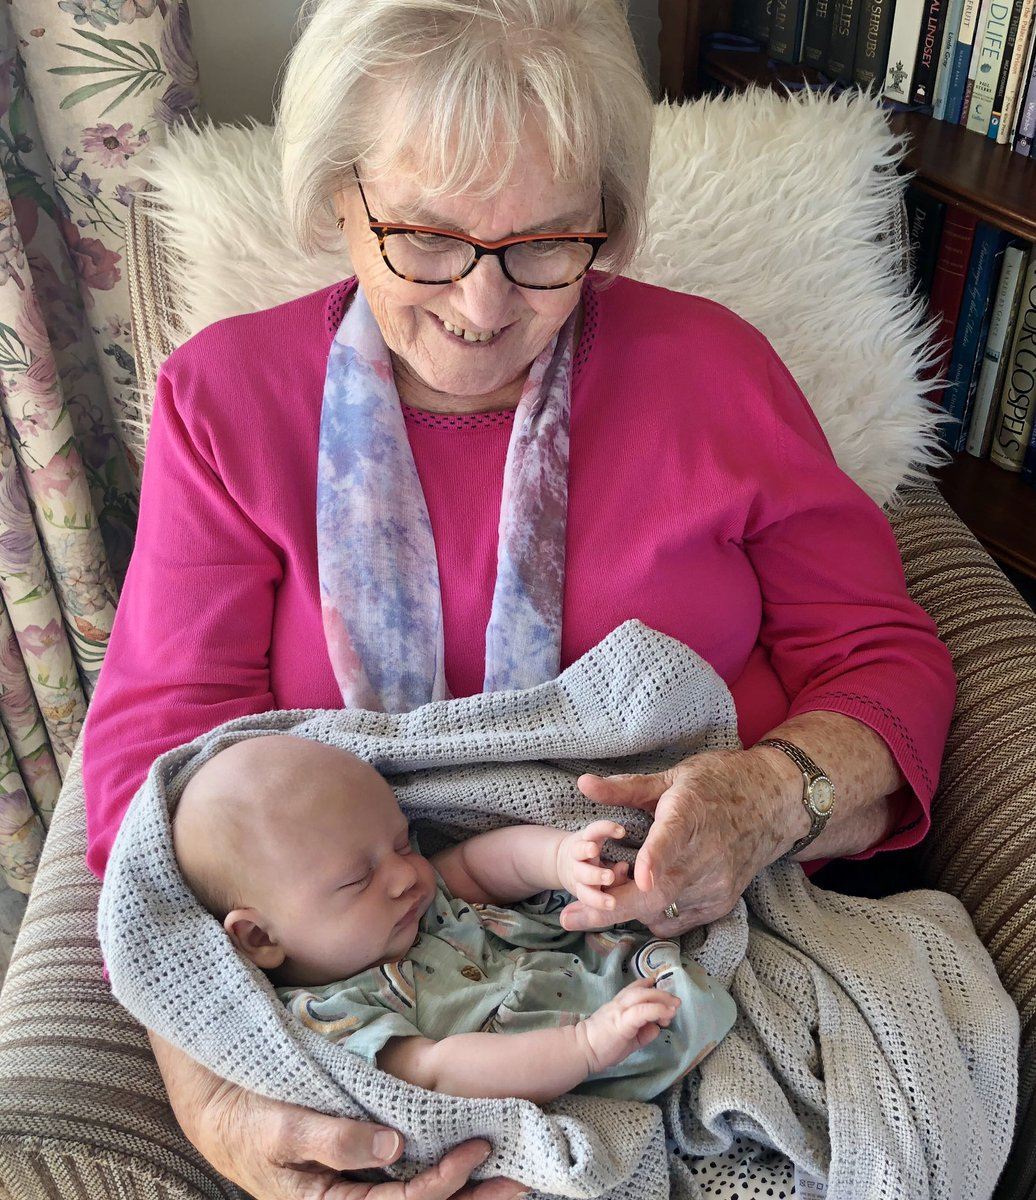 Two very special ladies: my mother and my granddaughter - her 14th great grandchild. It's true. Family is everything. ❤️#FourGenerations